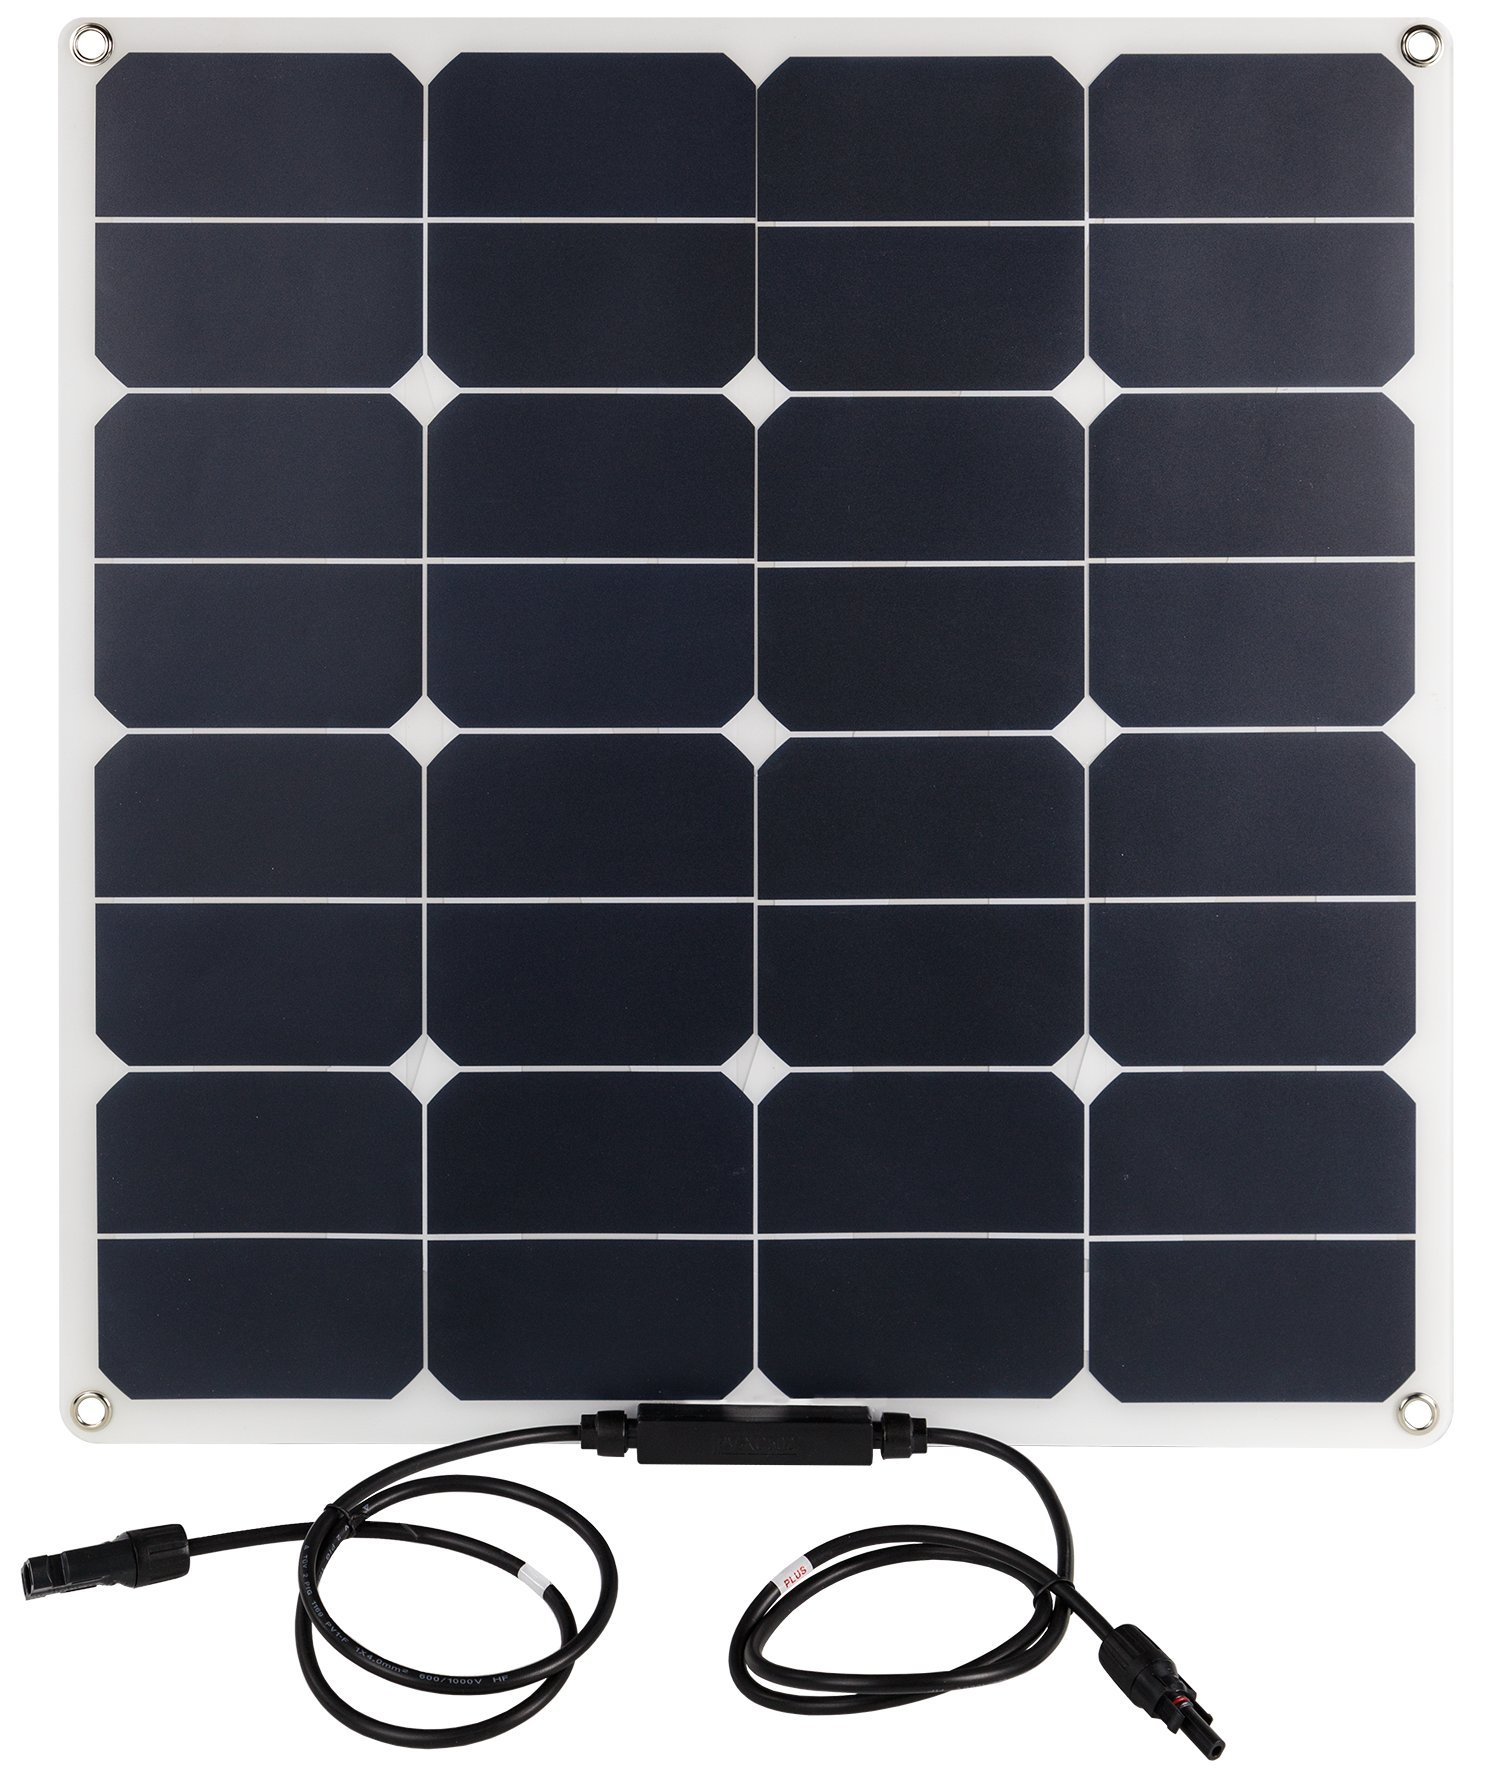 NUZAMAS NEW 10 Sets of MC4 Solar Panel Connectors Male Female for PV Solar Panel Cable